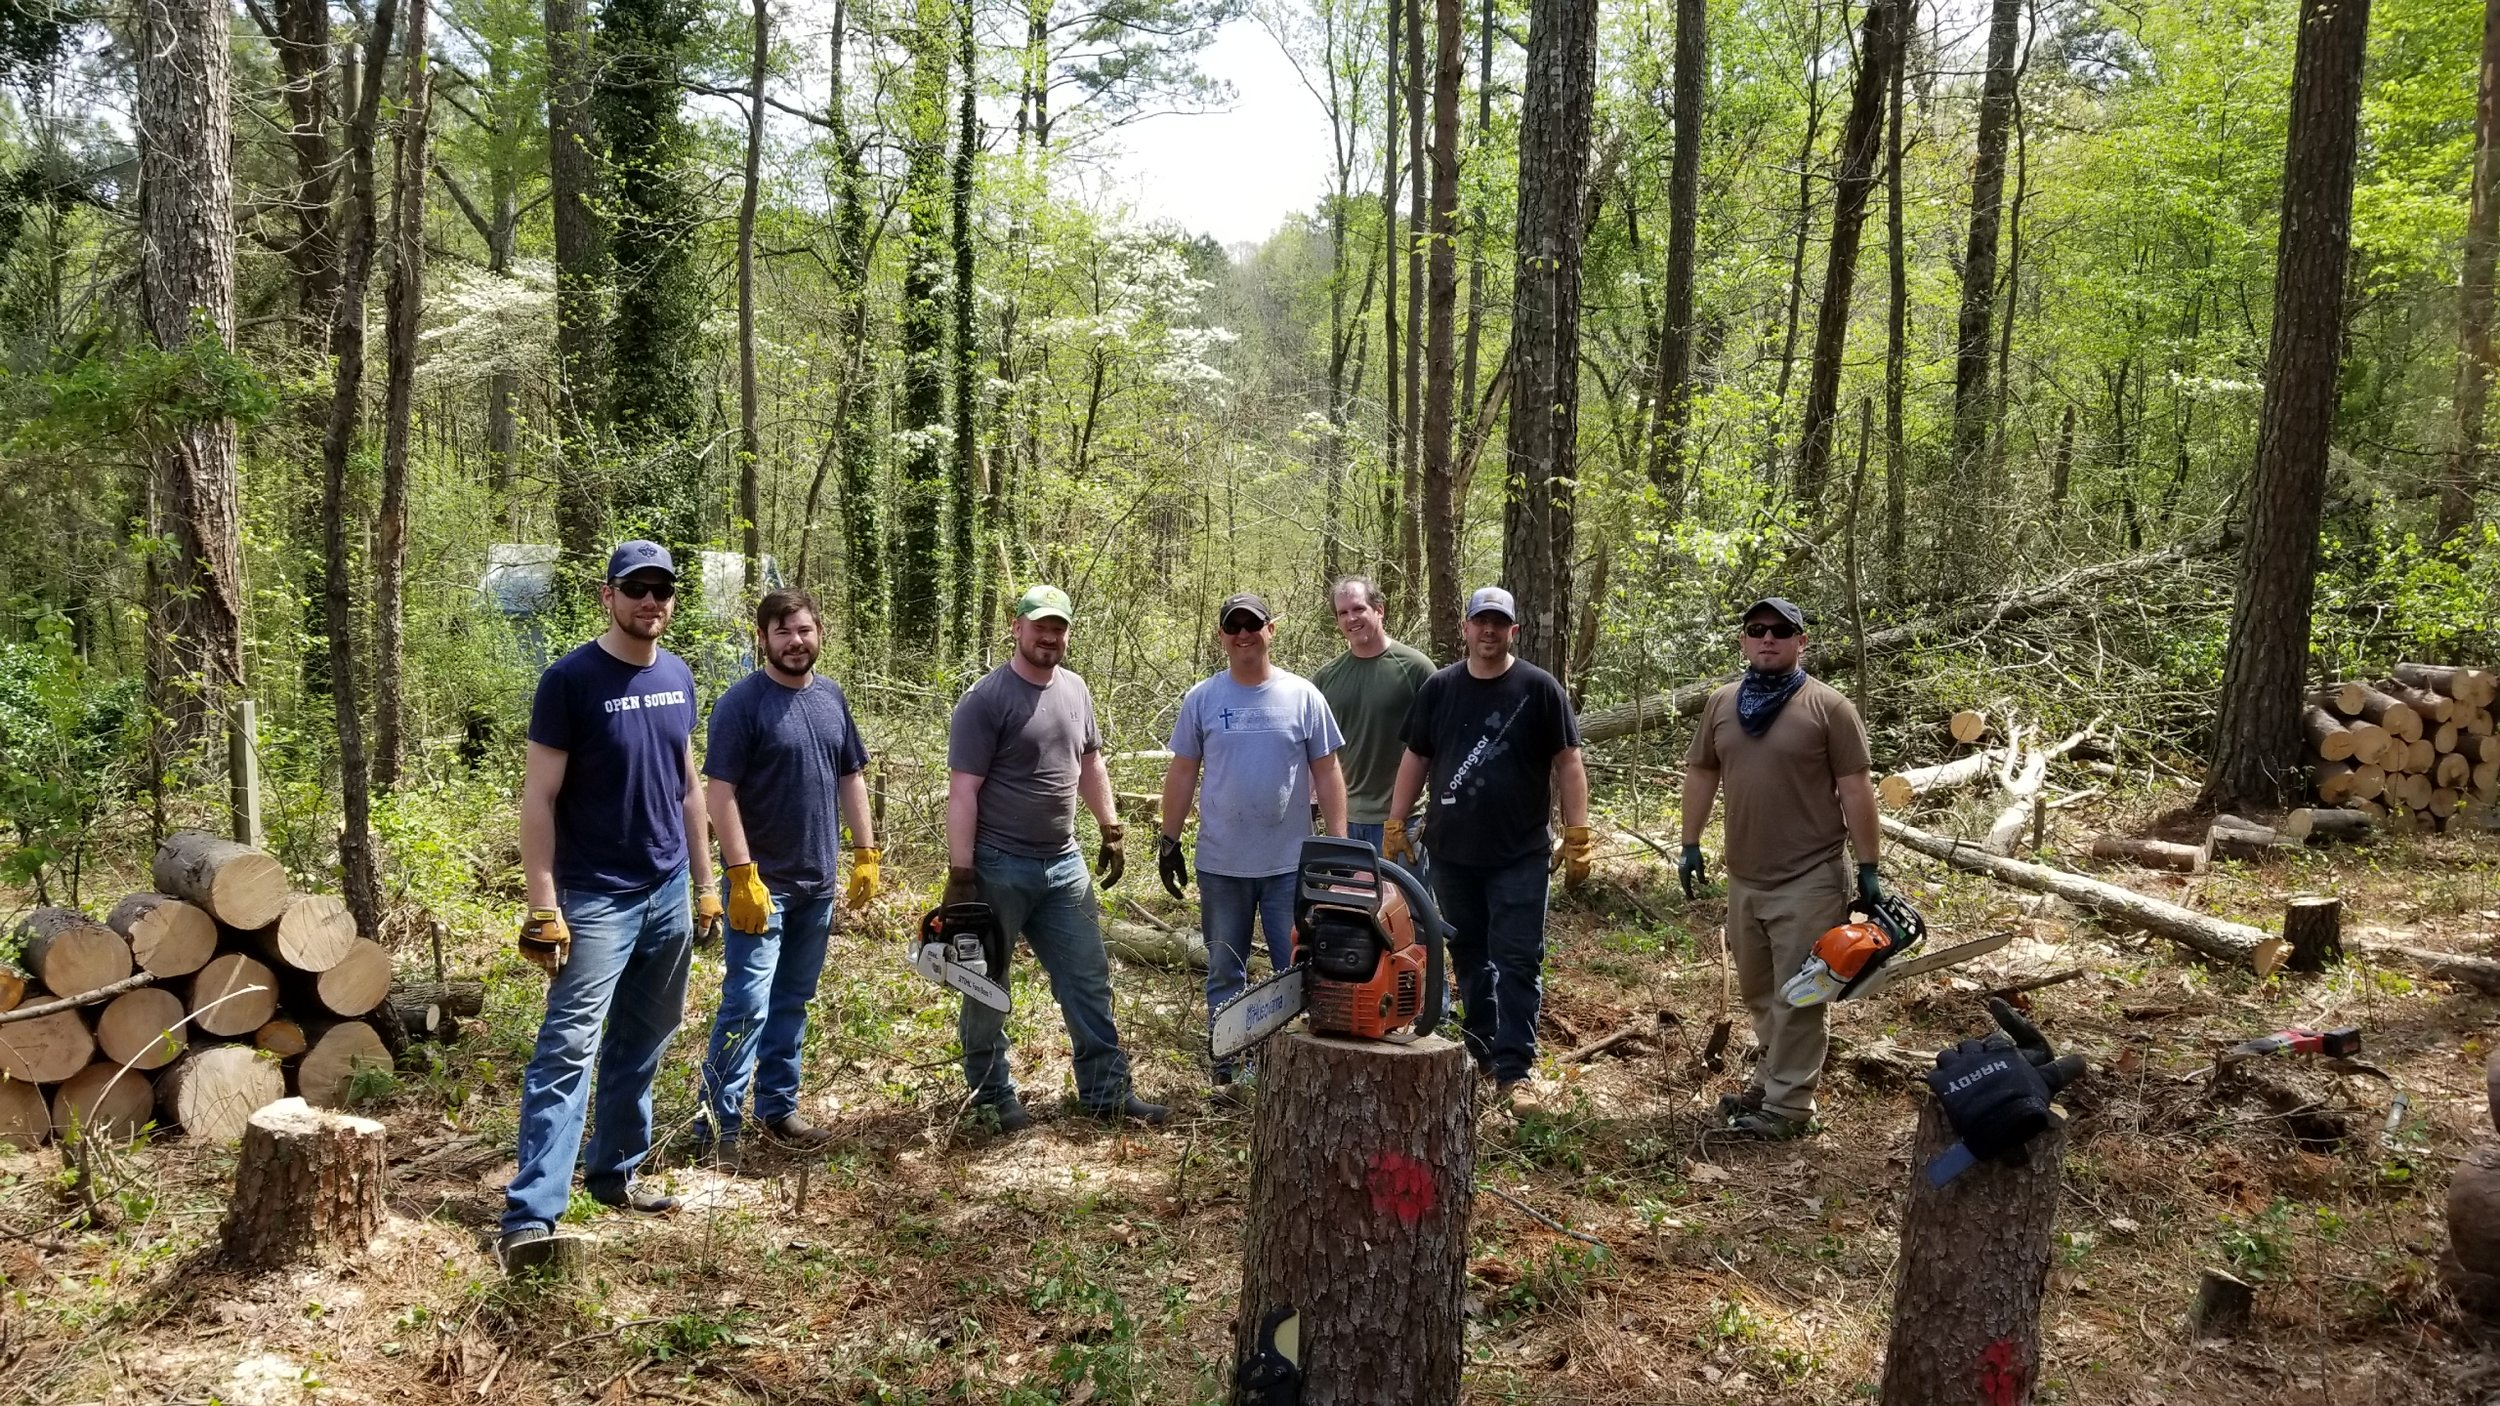 The Pioneer Technology Crew after a few hours volunteering on tree and brush clearing for The Ware House Project